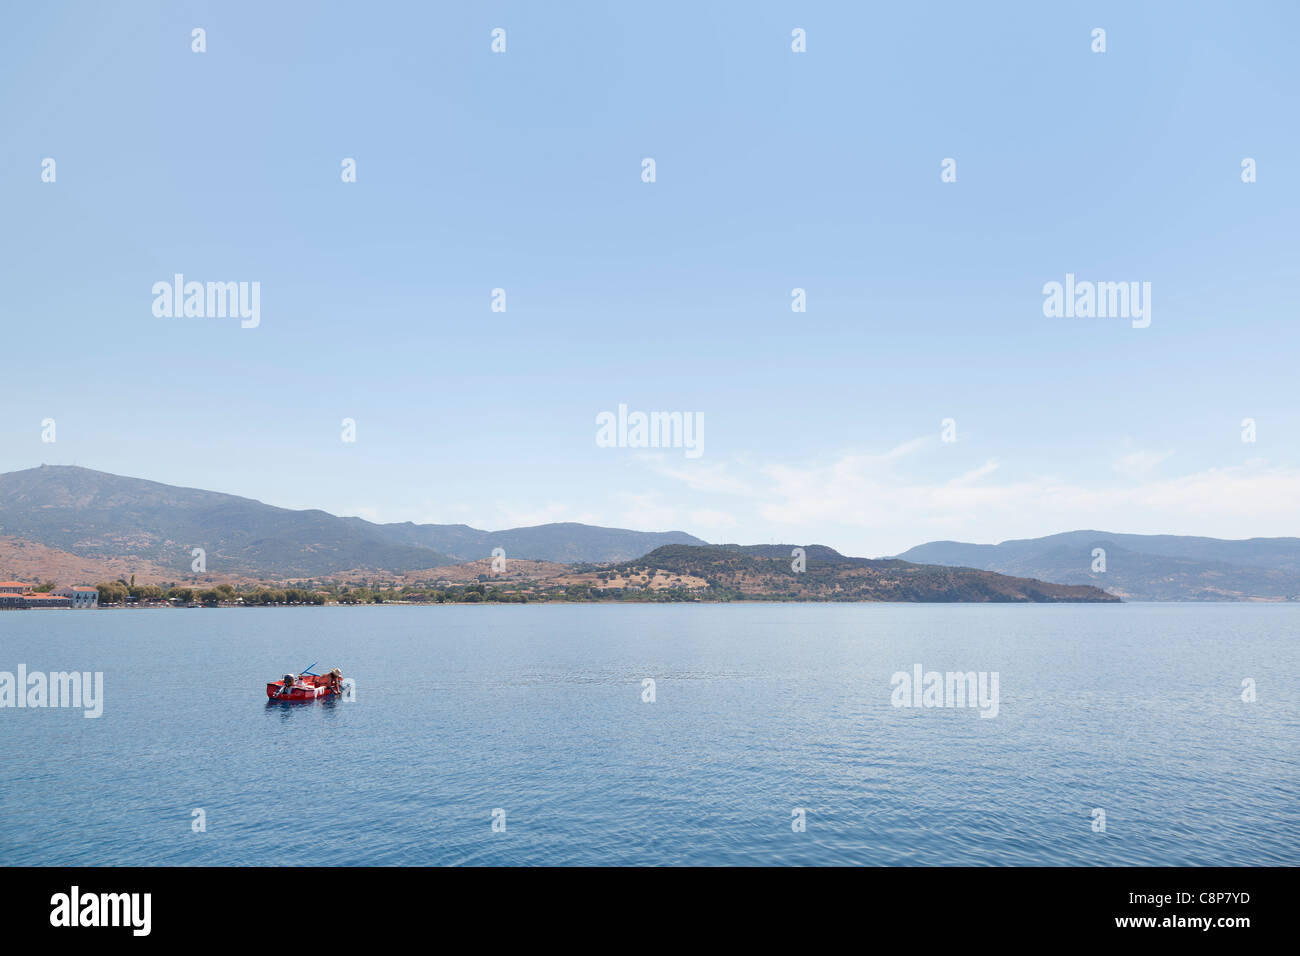 Fisherman at the clear coast of Lesbos, Greece - Stock Image